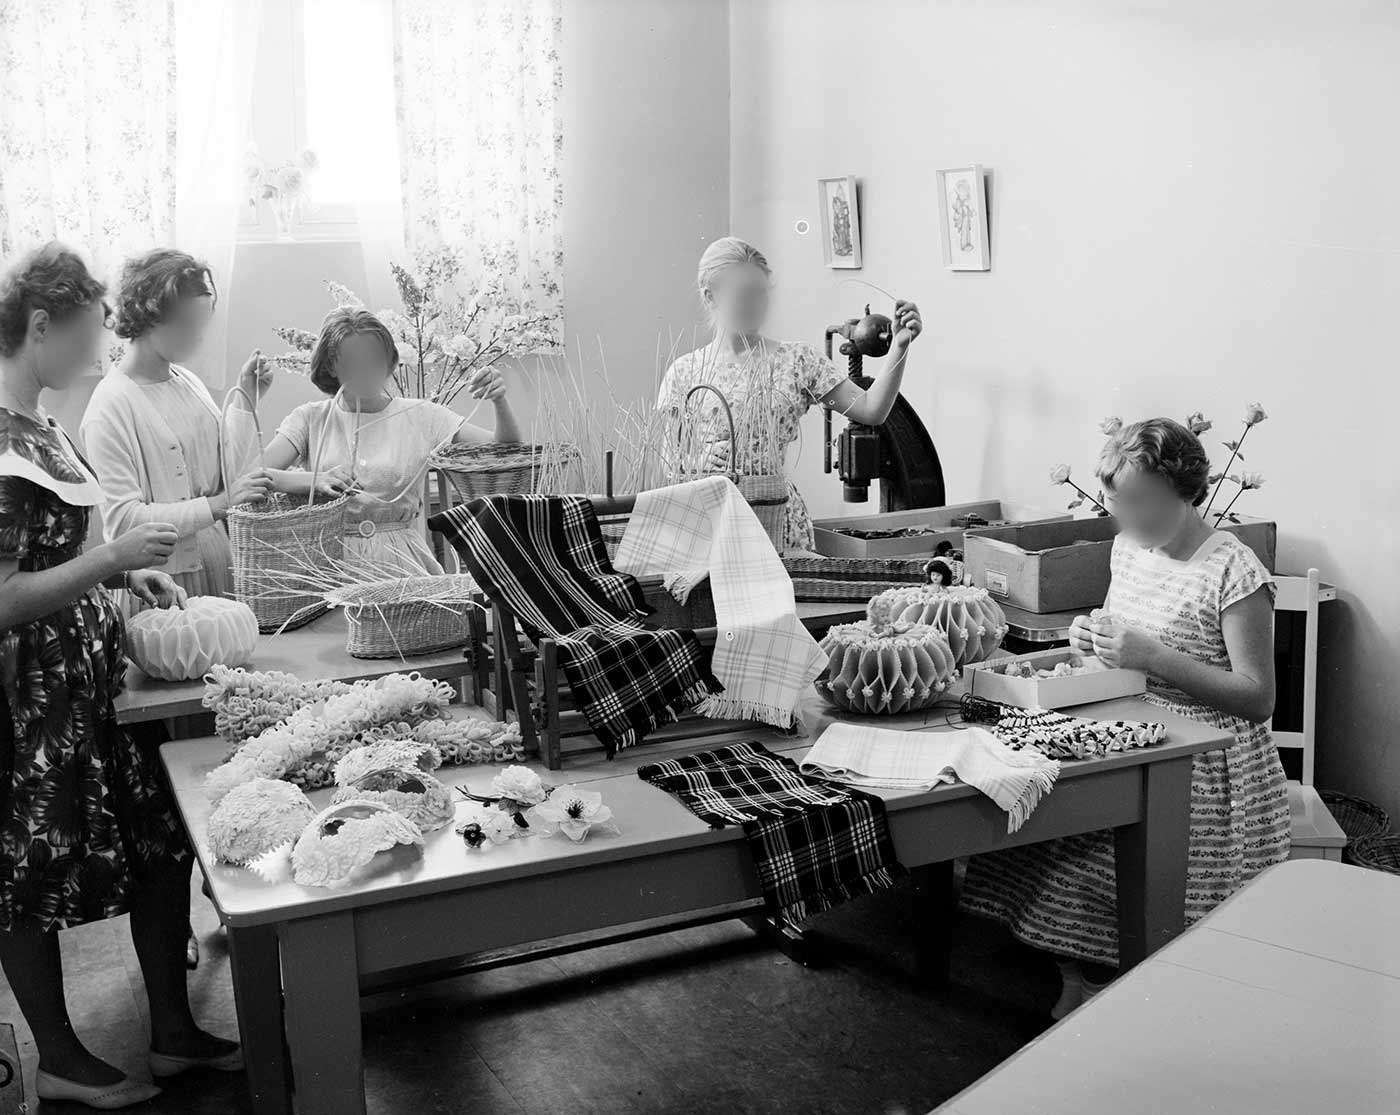 Black and white photos showing five teenage girls gathered around two tables covered with craft items. Three of the girls stand behind the tables working on baskets, a fourth at left working on a small cylindrical object, and a fifth, at right, seated at the table. - click to view larger image